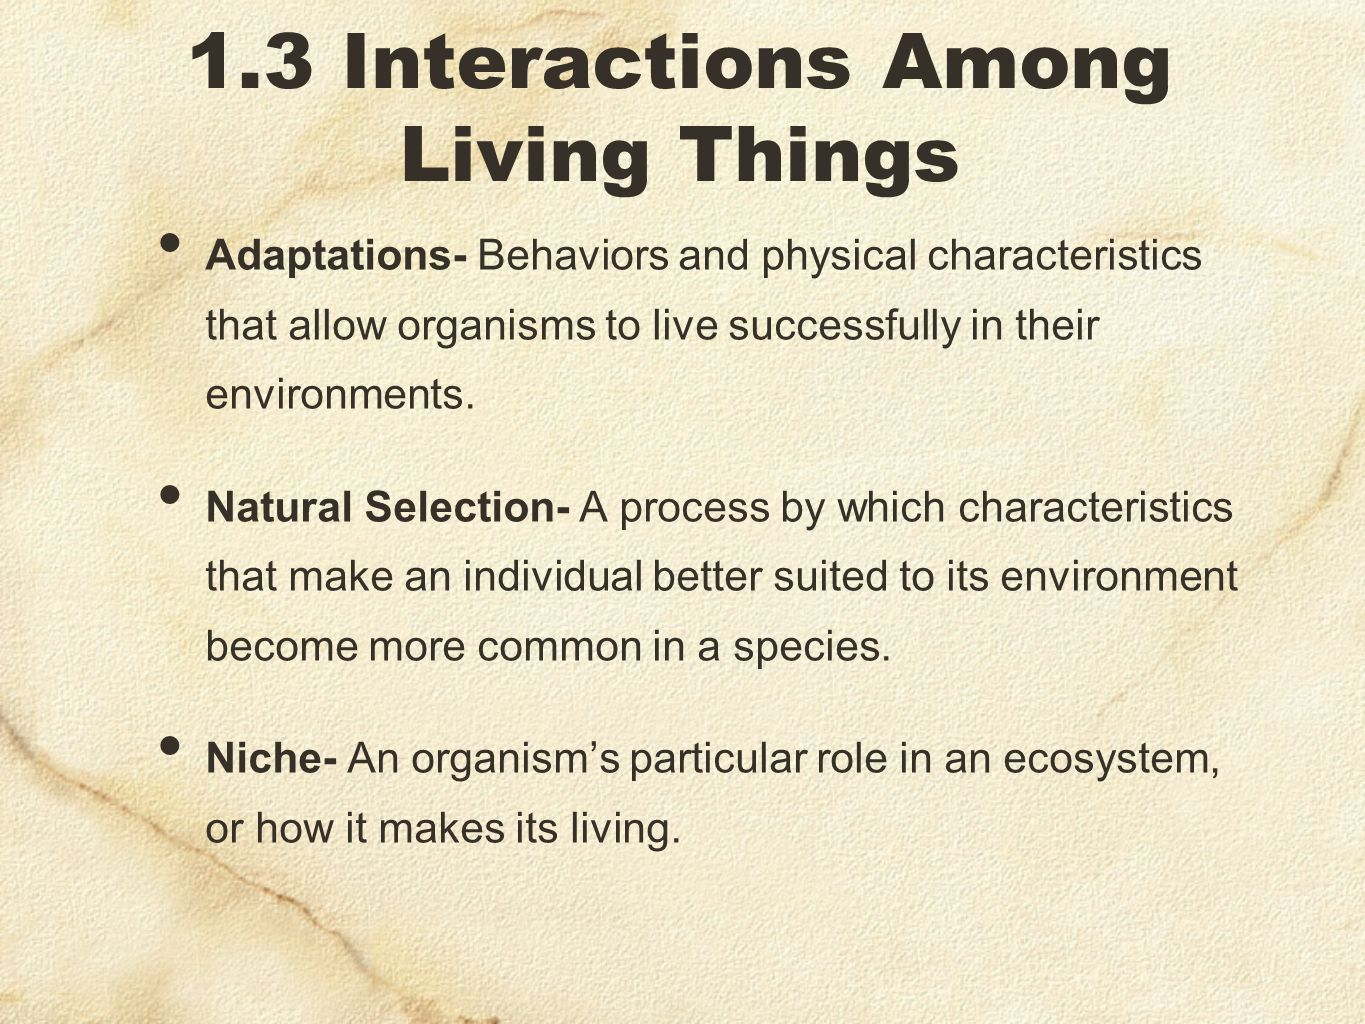 1.3 Interactions Among Living Things Adaptations- Behaviors and physical characteristics that allow organisms to live successfully in their environmen